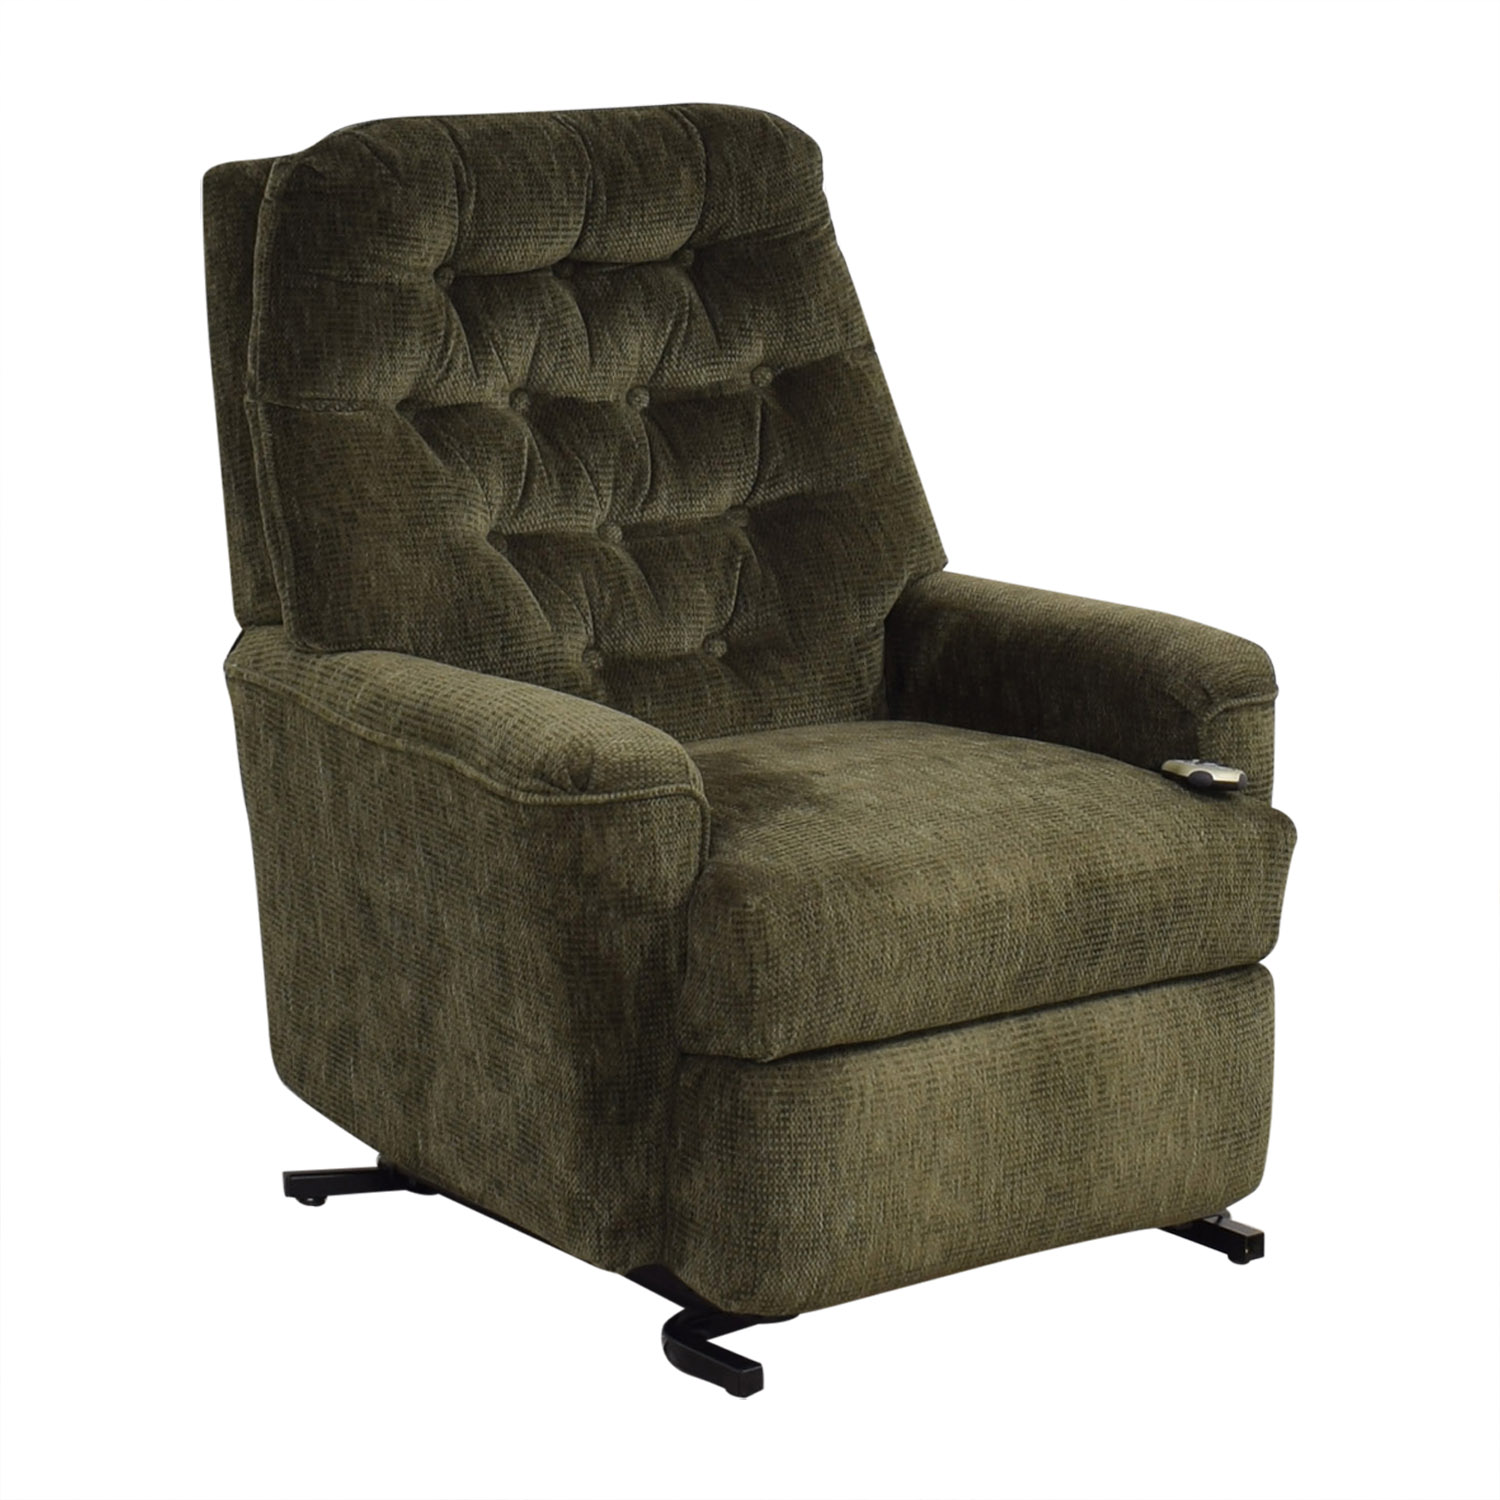 Best Chairs Best Chairs Power Lift Recliner nj